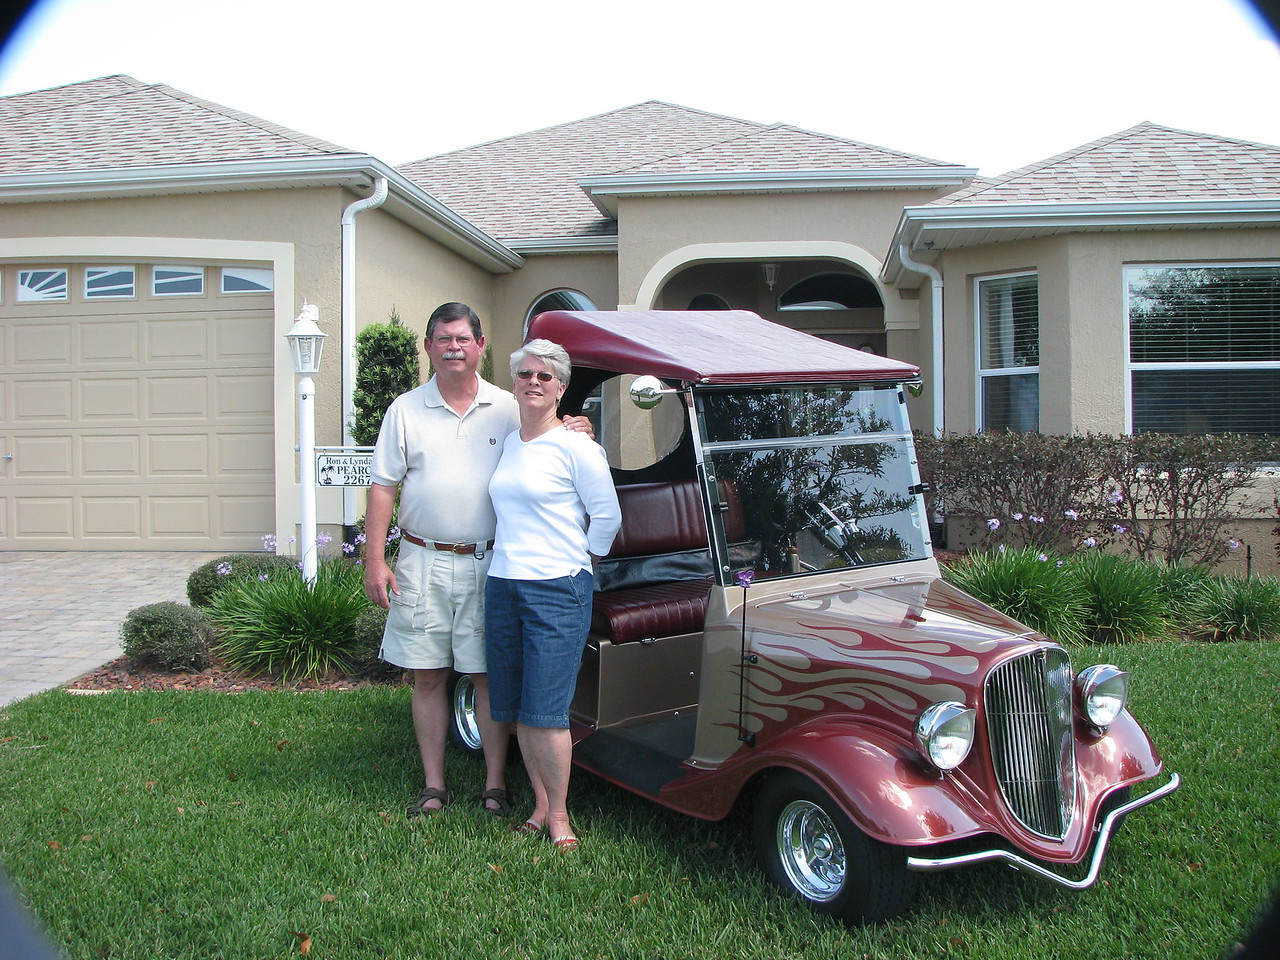 Ron & Lynda the proud owners